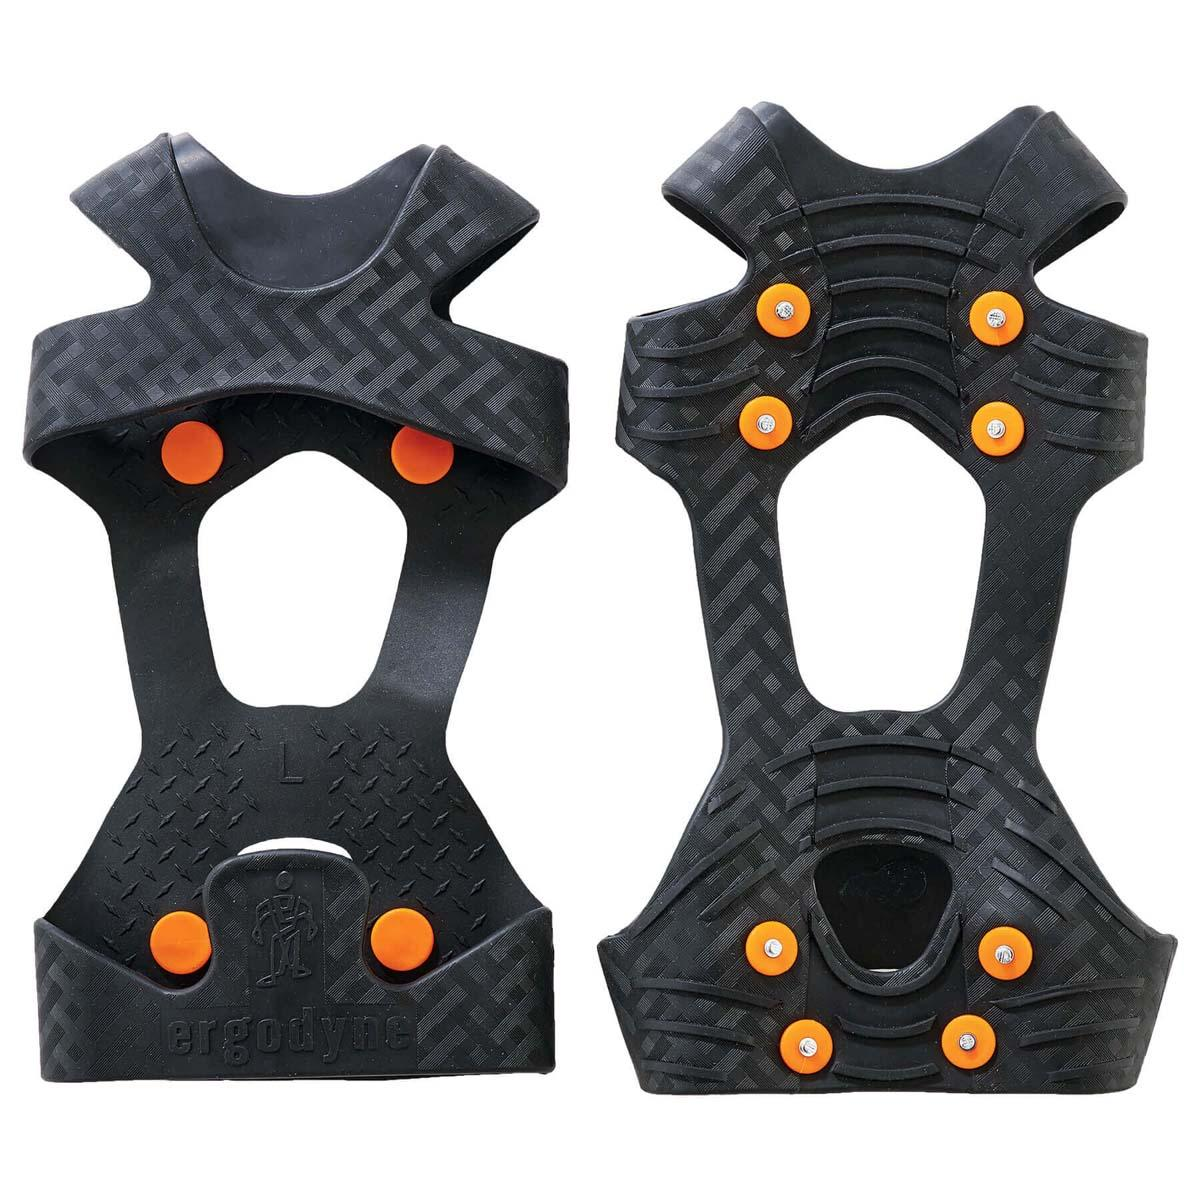 6300 M Black One Piece Ice Traction Device